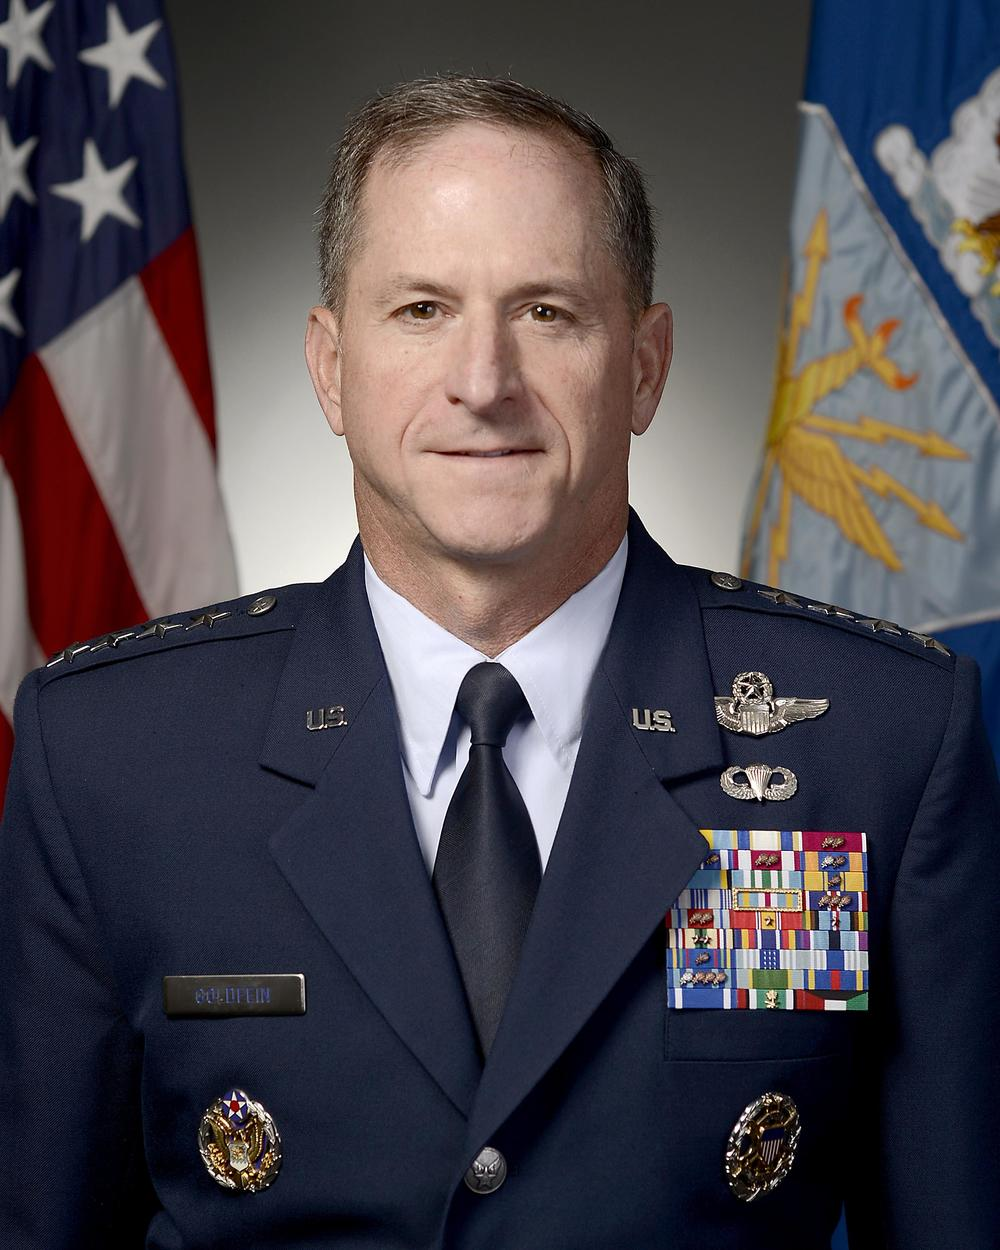 Vice Chief of Staff of the U.S. Air Force Gen. David L. Goldfein. Credit: USAF via Wikimedia Commons.